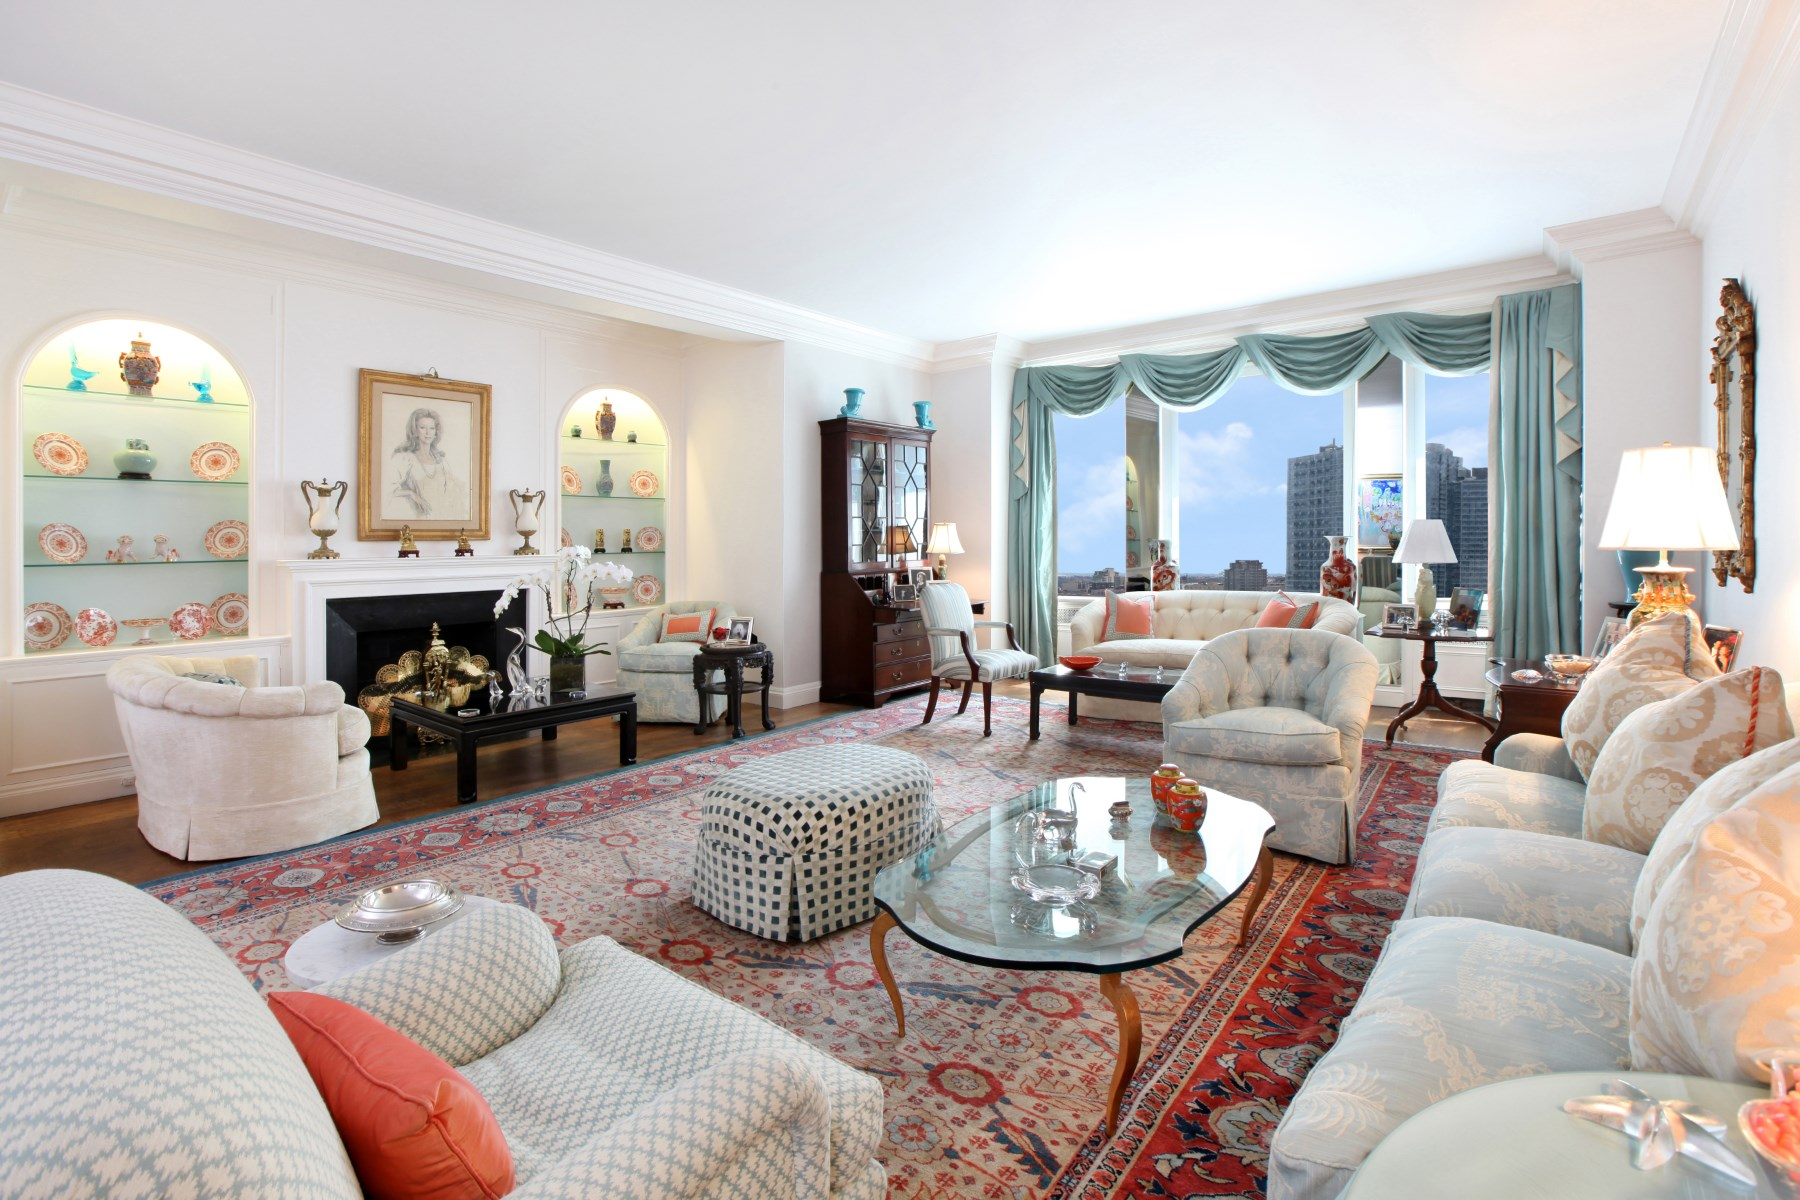 Co-op for Sale at River House: 10 Rooms of Grace and Style Midtown East, New York, New York, 10022 United States